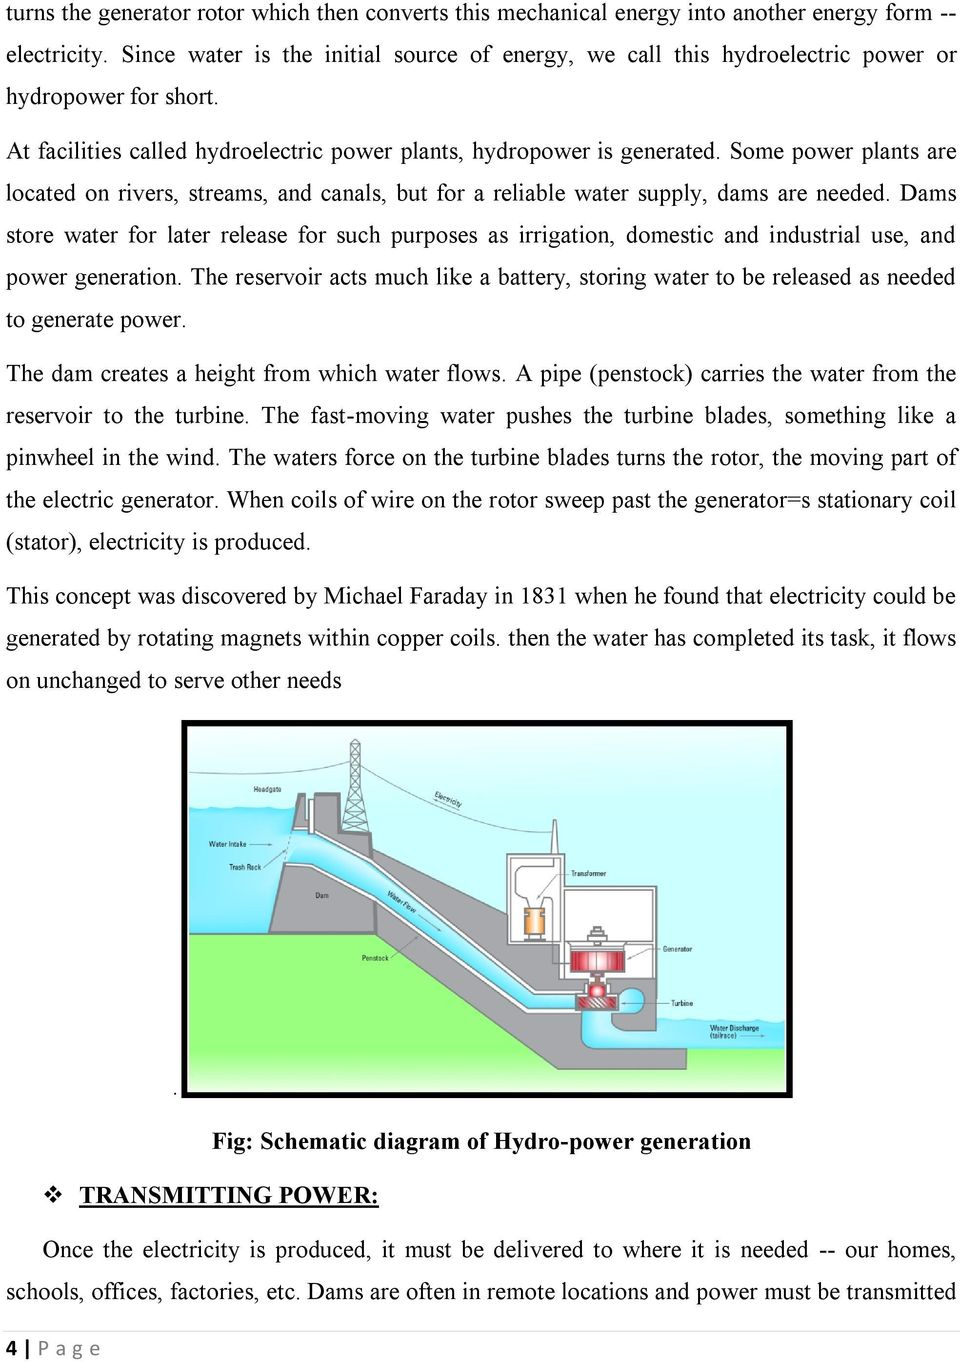 hight resolution of some power plants are located on rivers streams and canals but for a